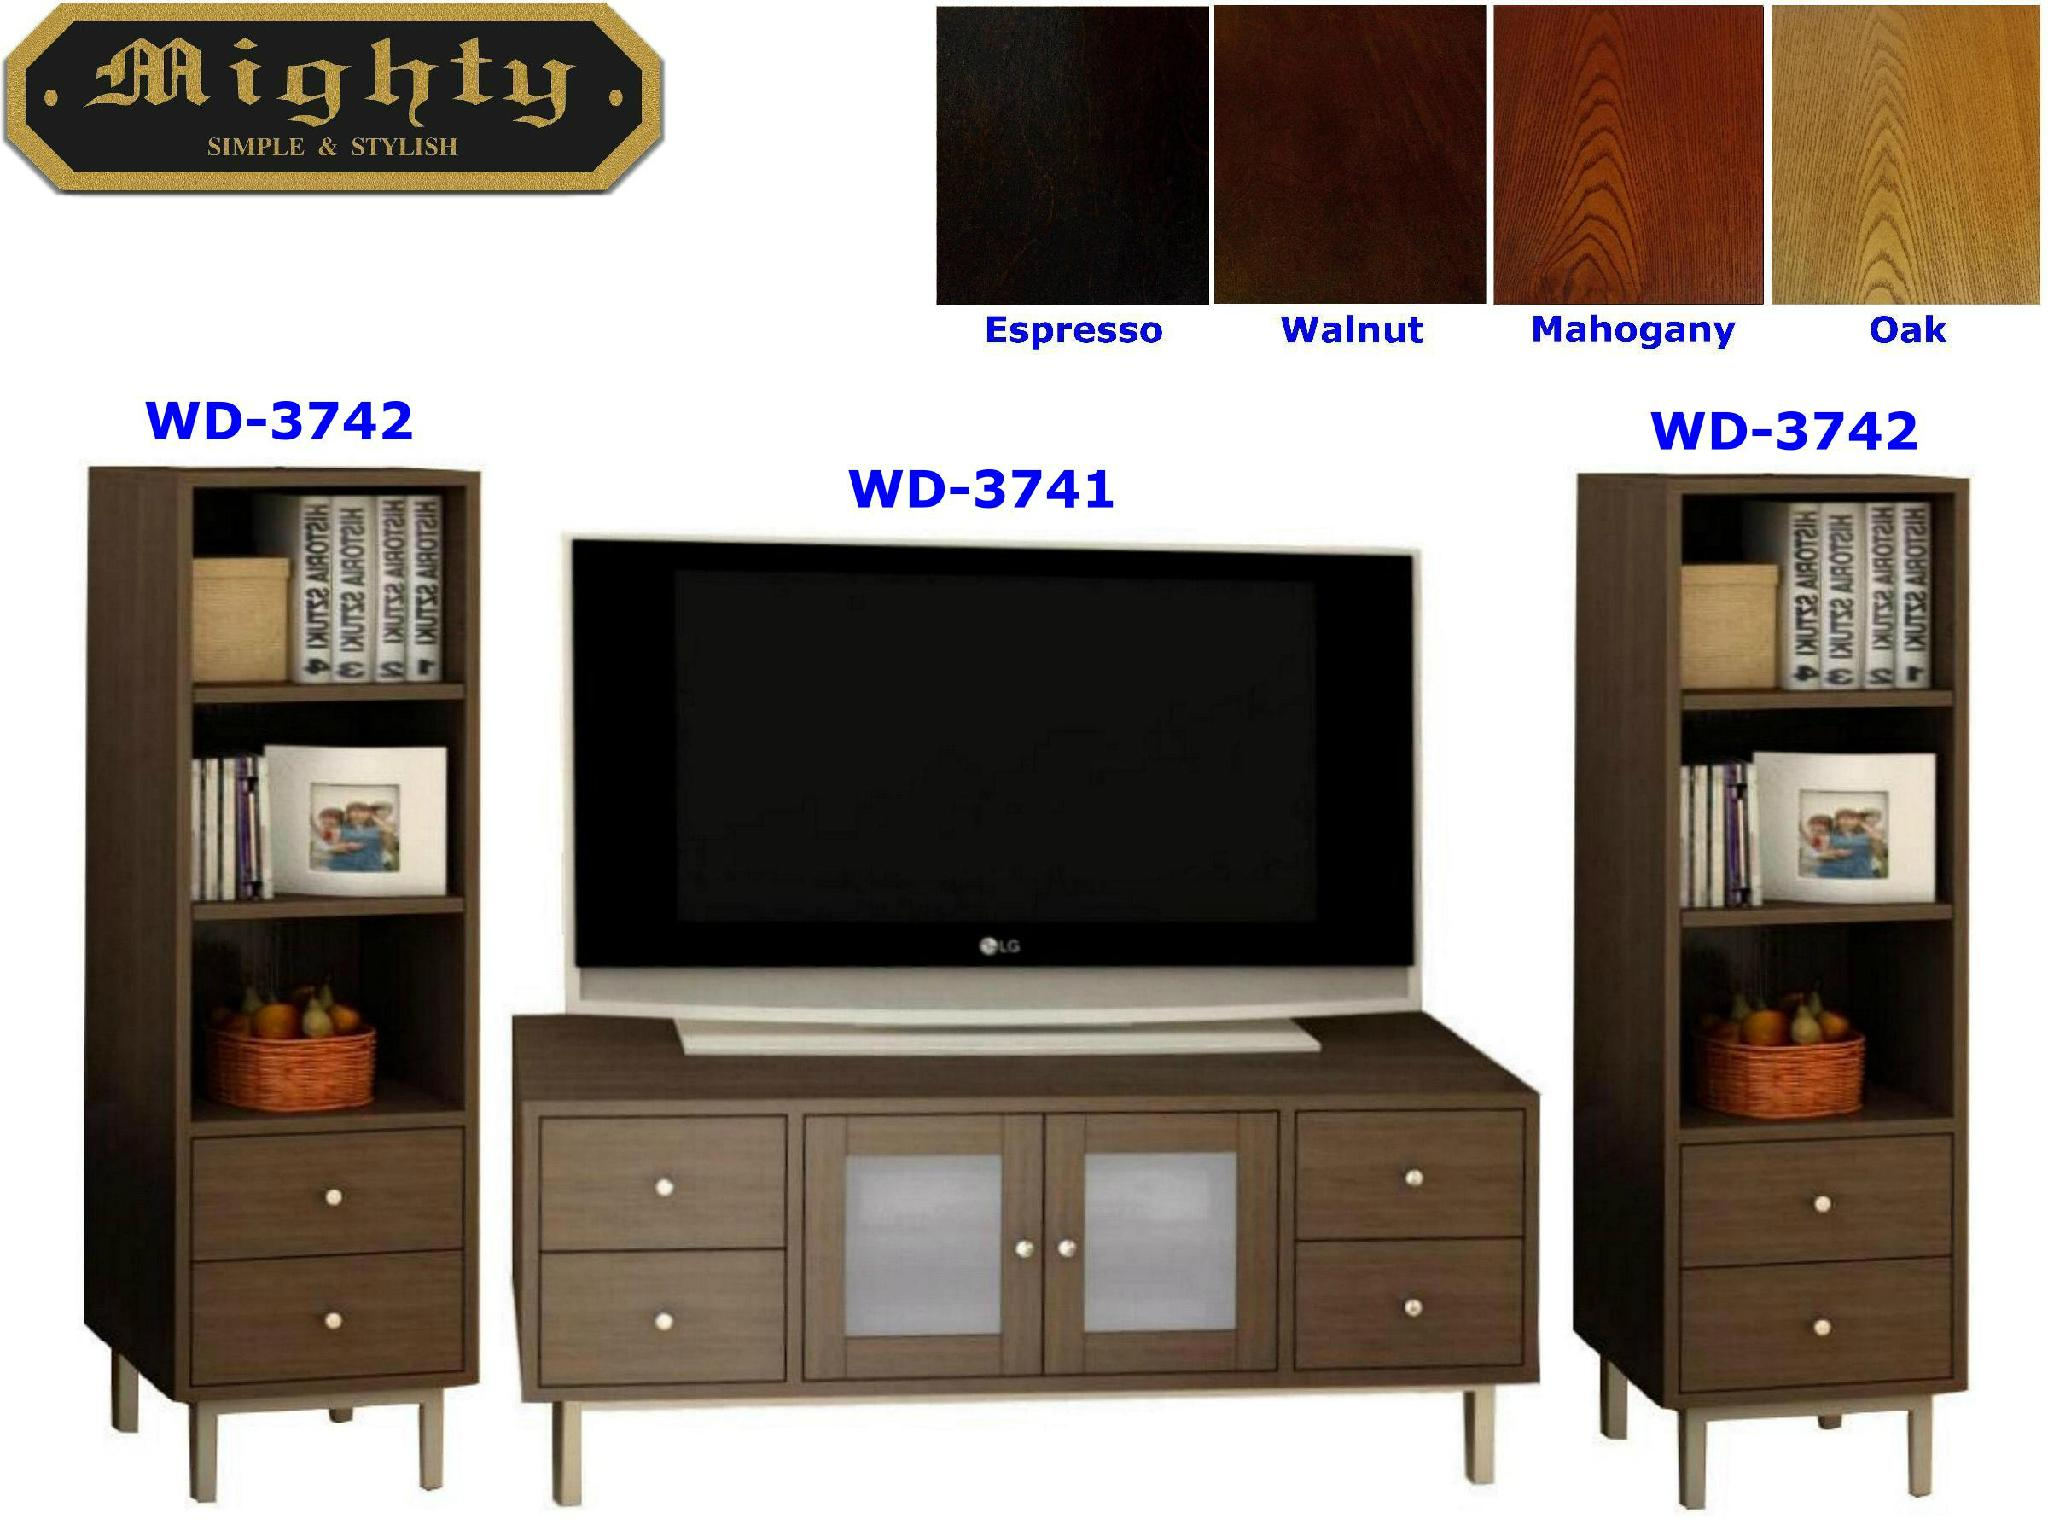 Wooden Espresso Stereo And Audio Cabinet TV Entertainment Unit 1 ...